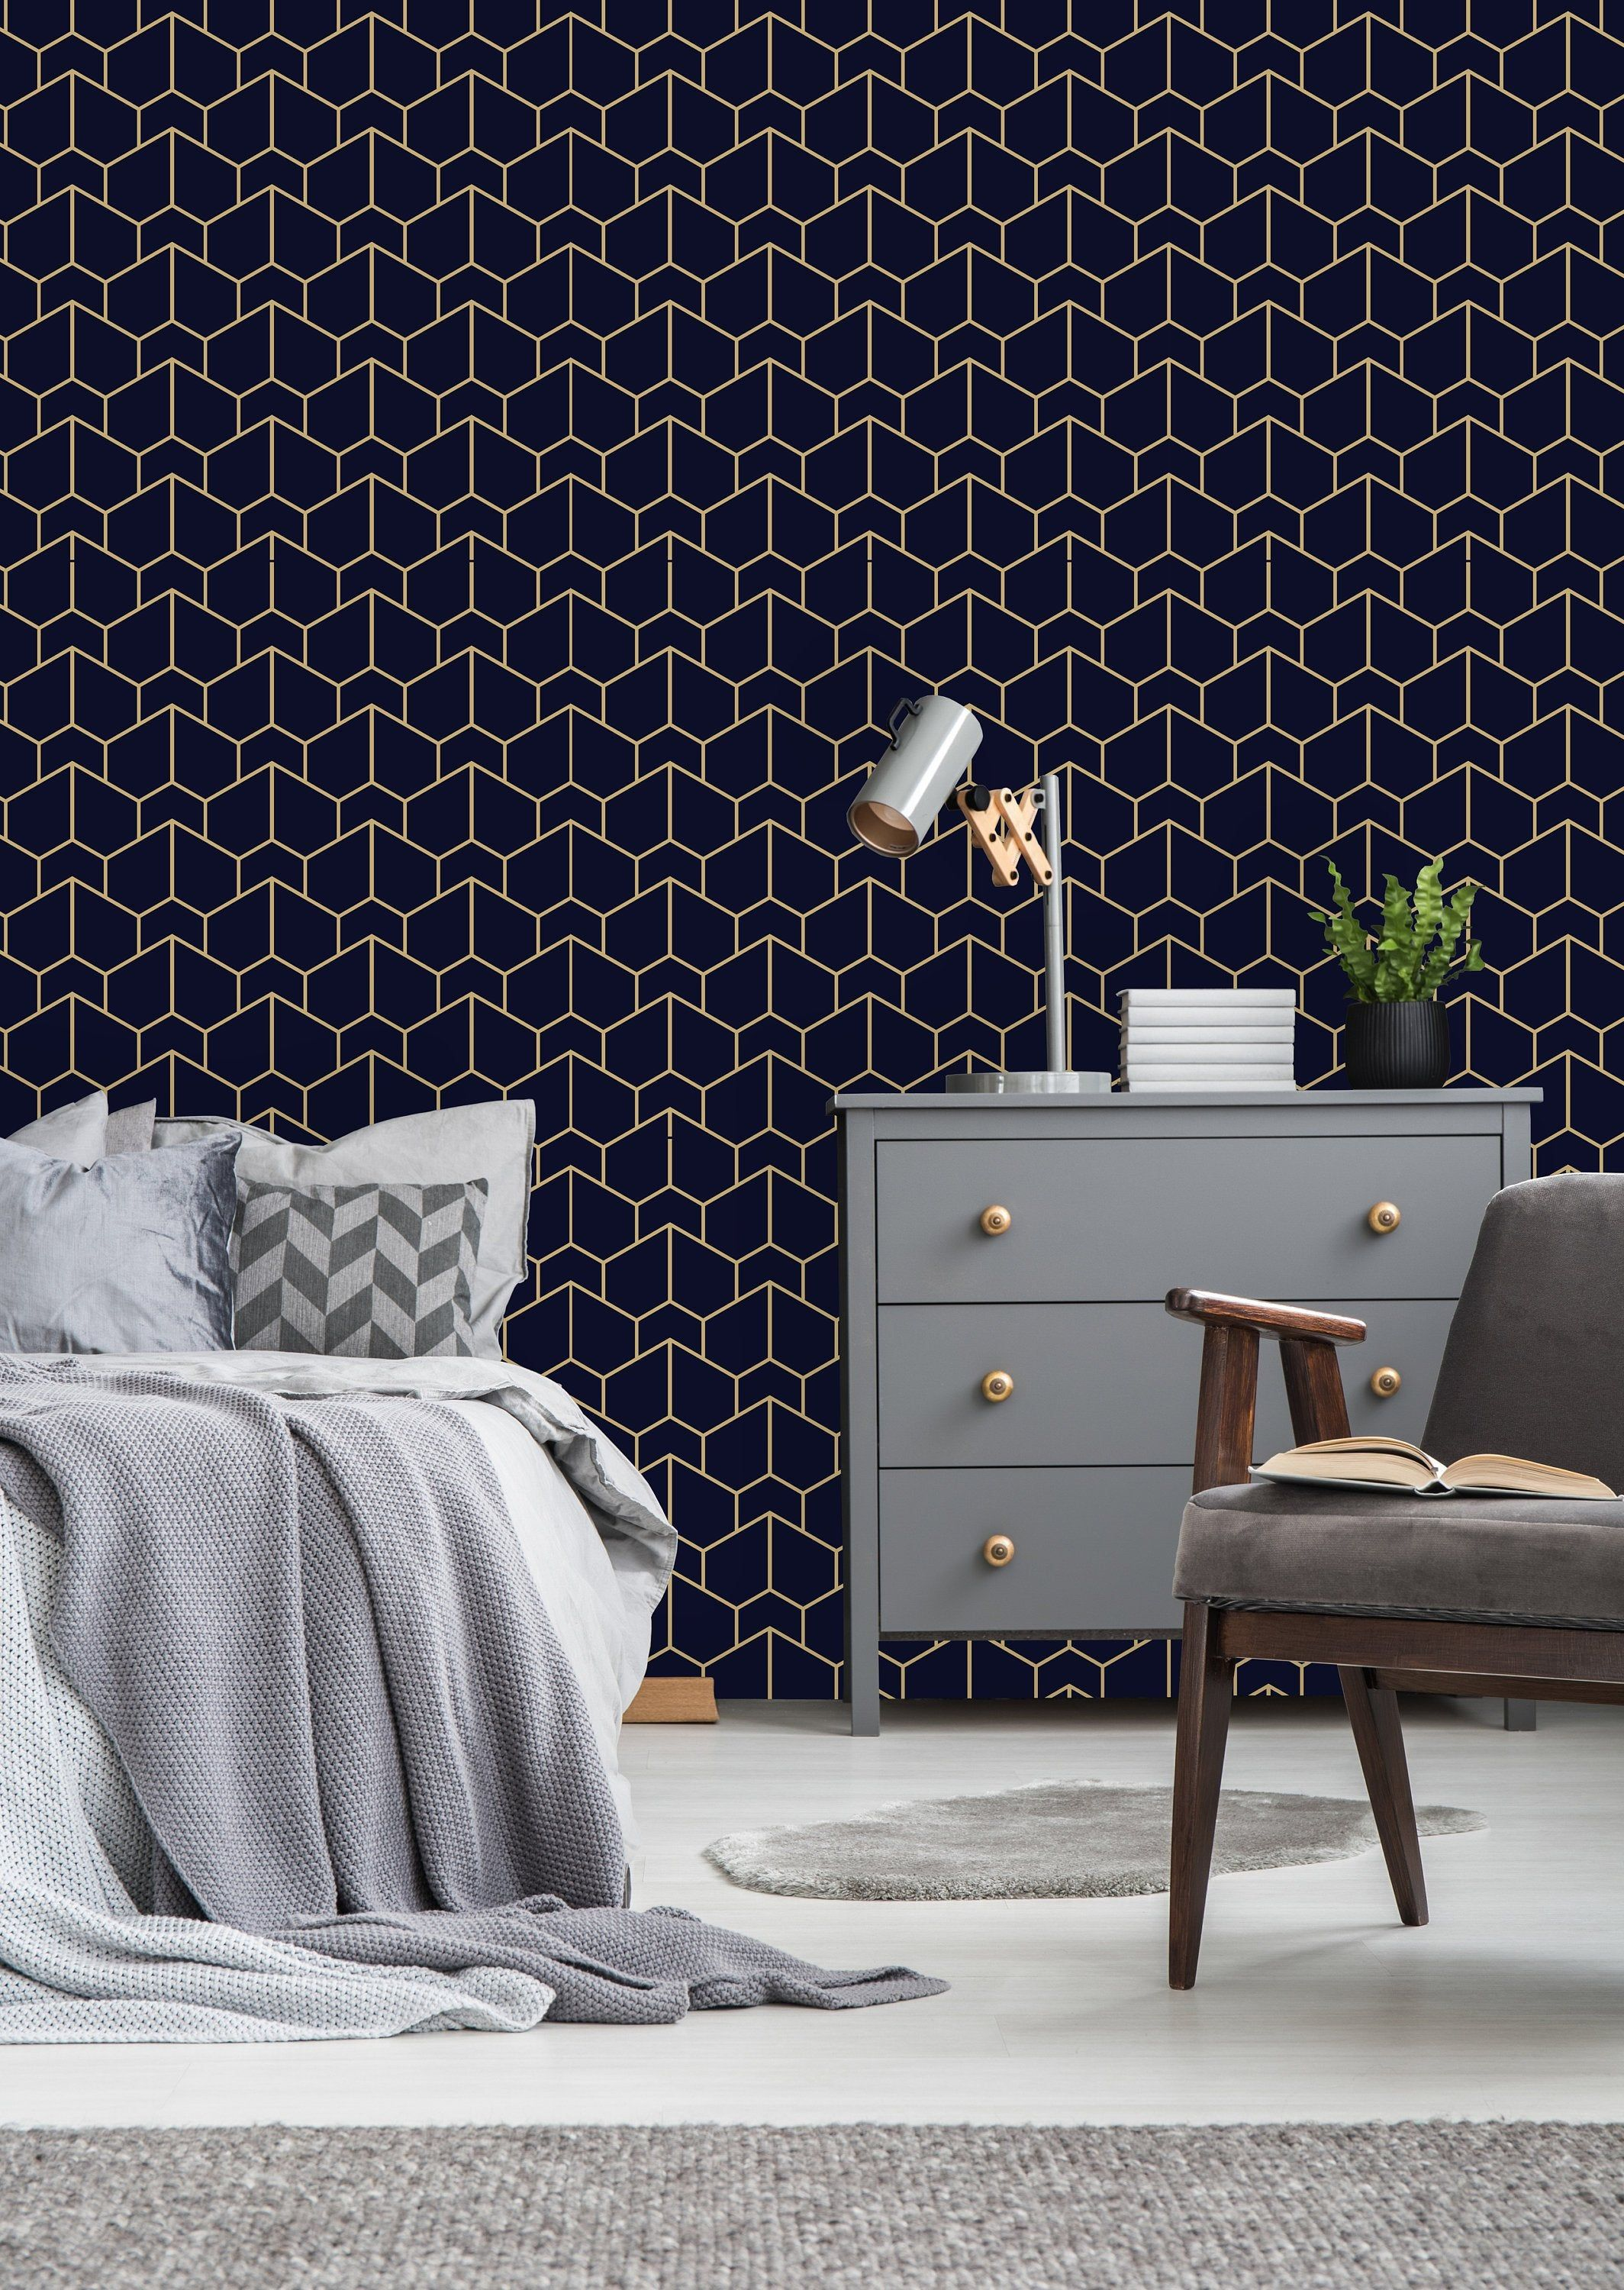 Blue Black and Gold Texture Removable WallpaperPeel and